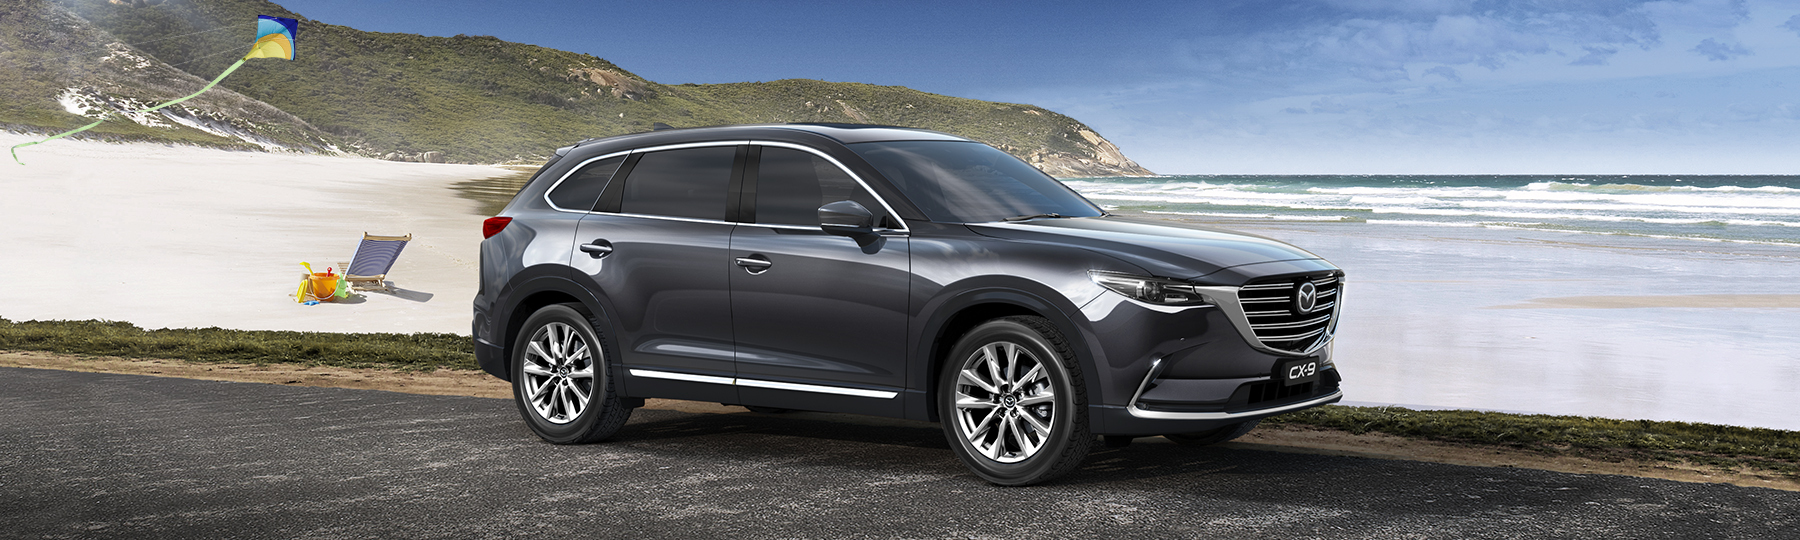 Win a Brand-New Mazda CX-9. Enter for your family, win for yourself